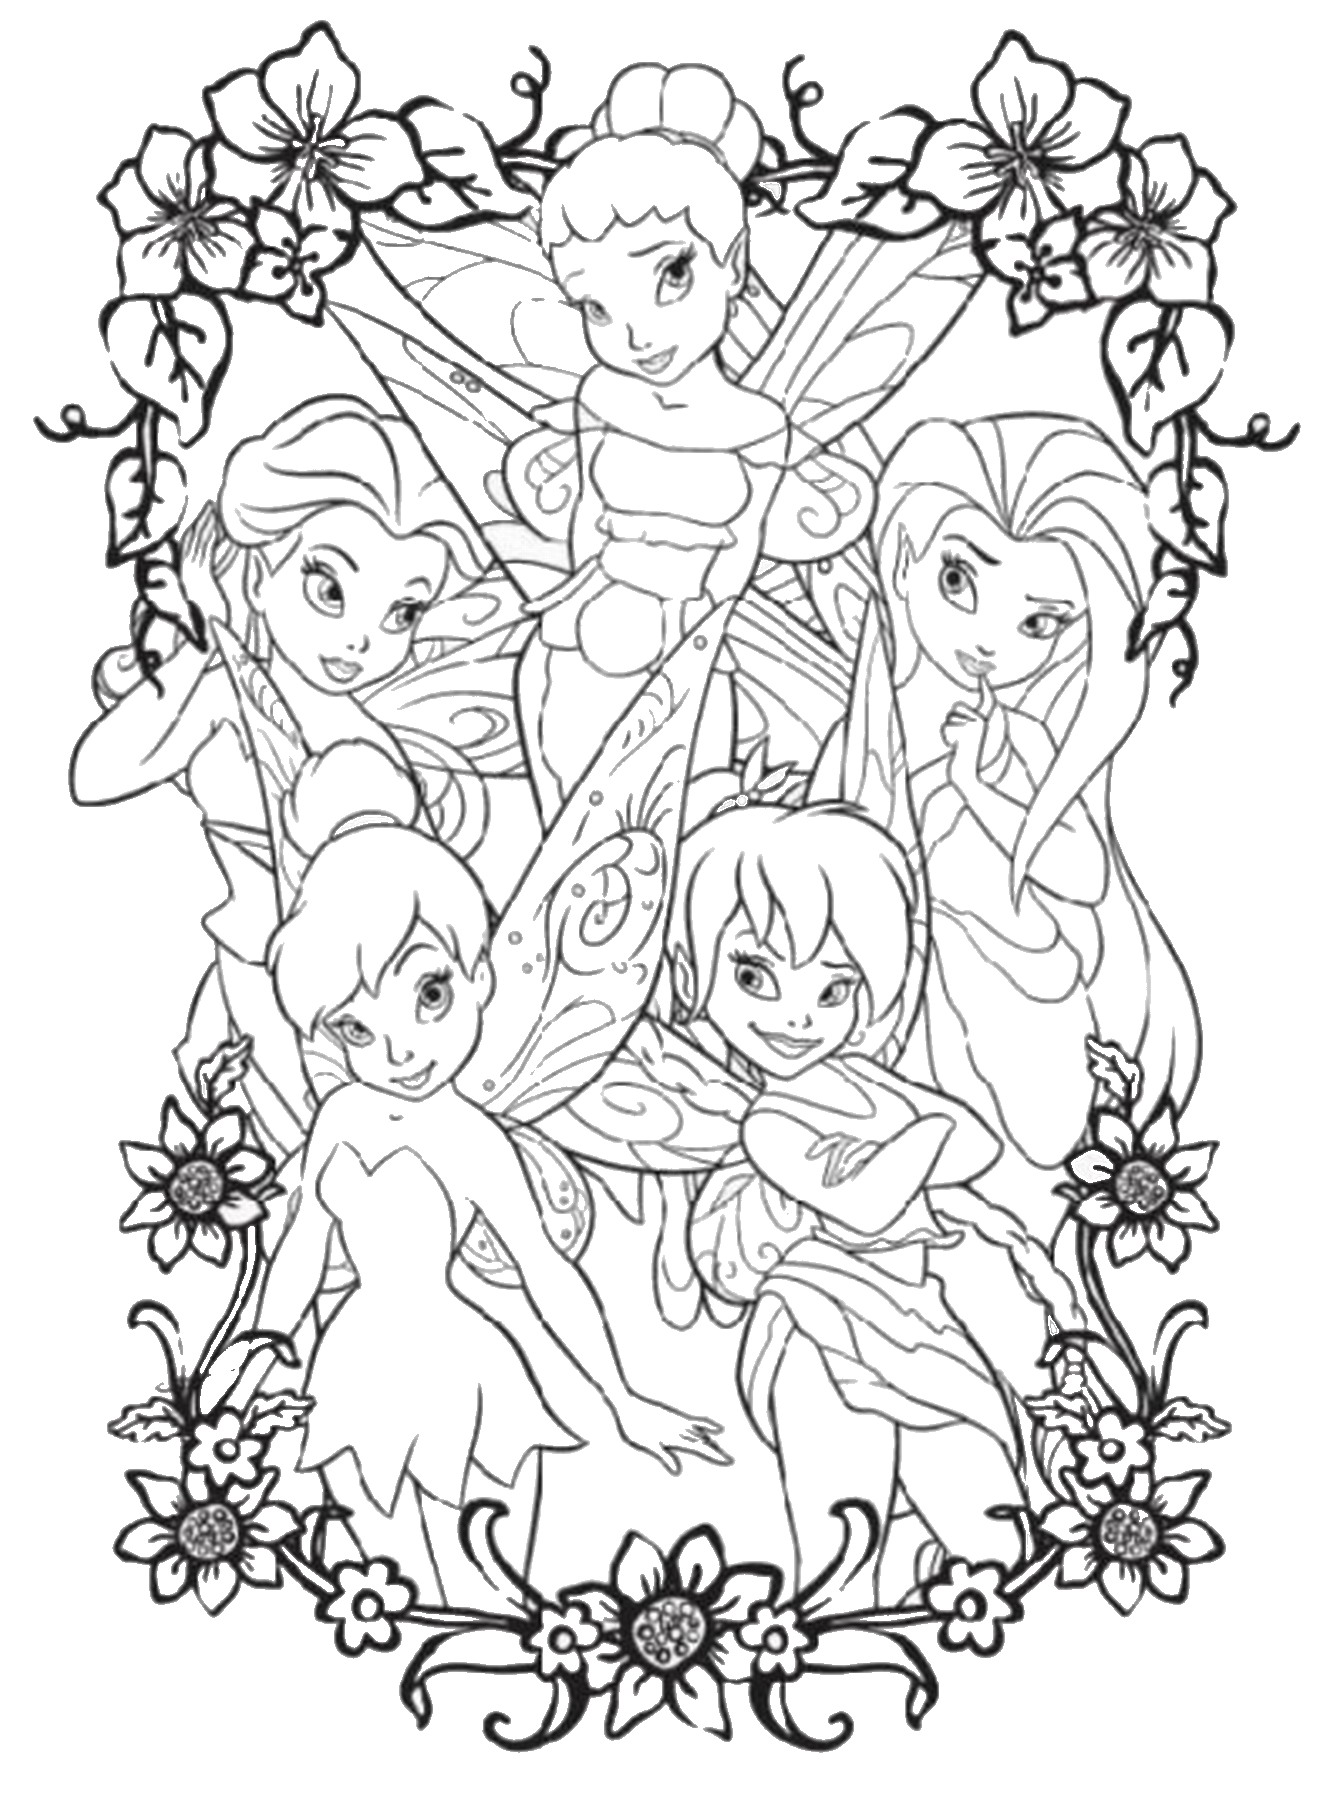 free printable tinkerbell coloring pages tinker bell coloring pages to download and print for free printable pages free tinkerbell coloring